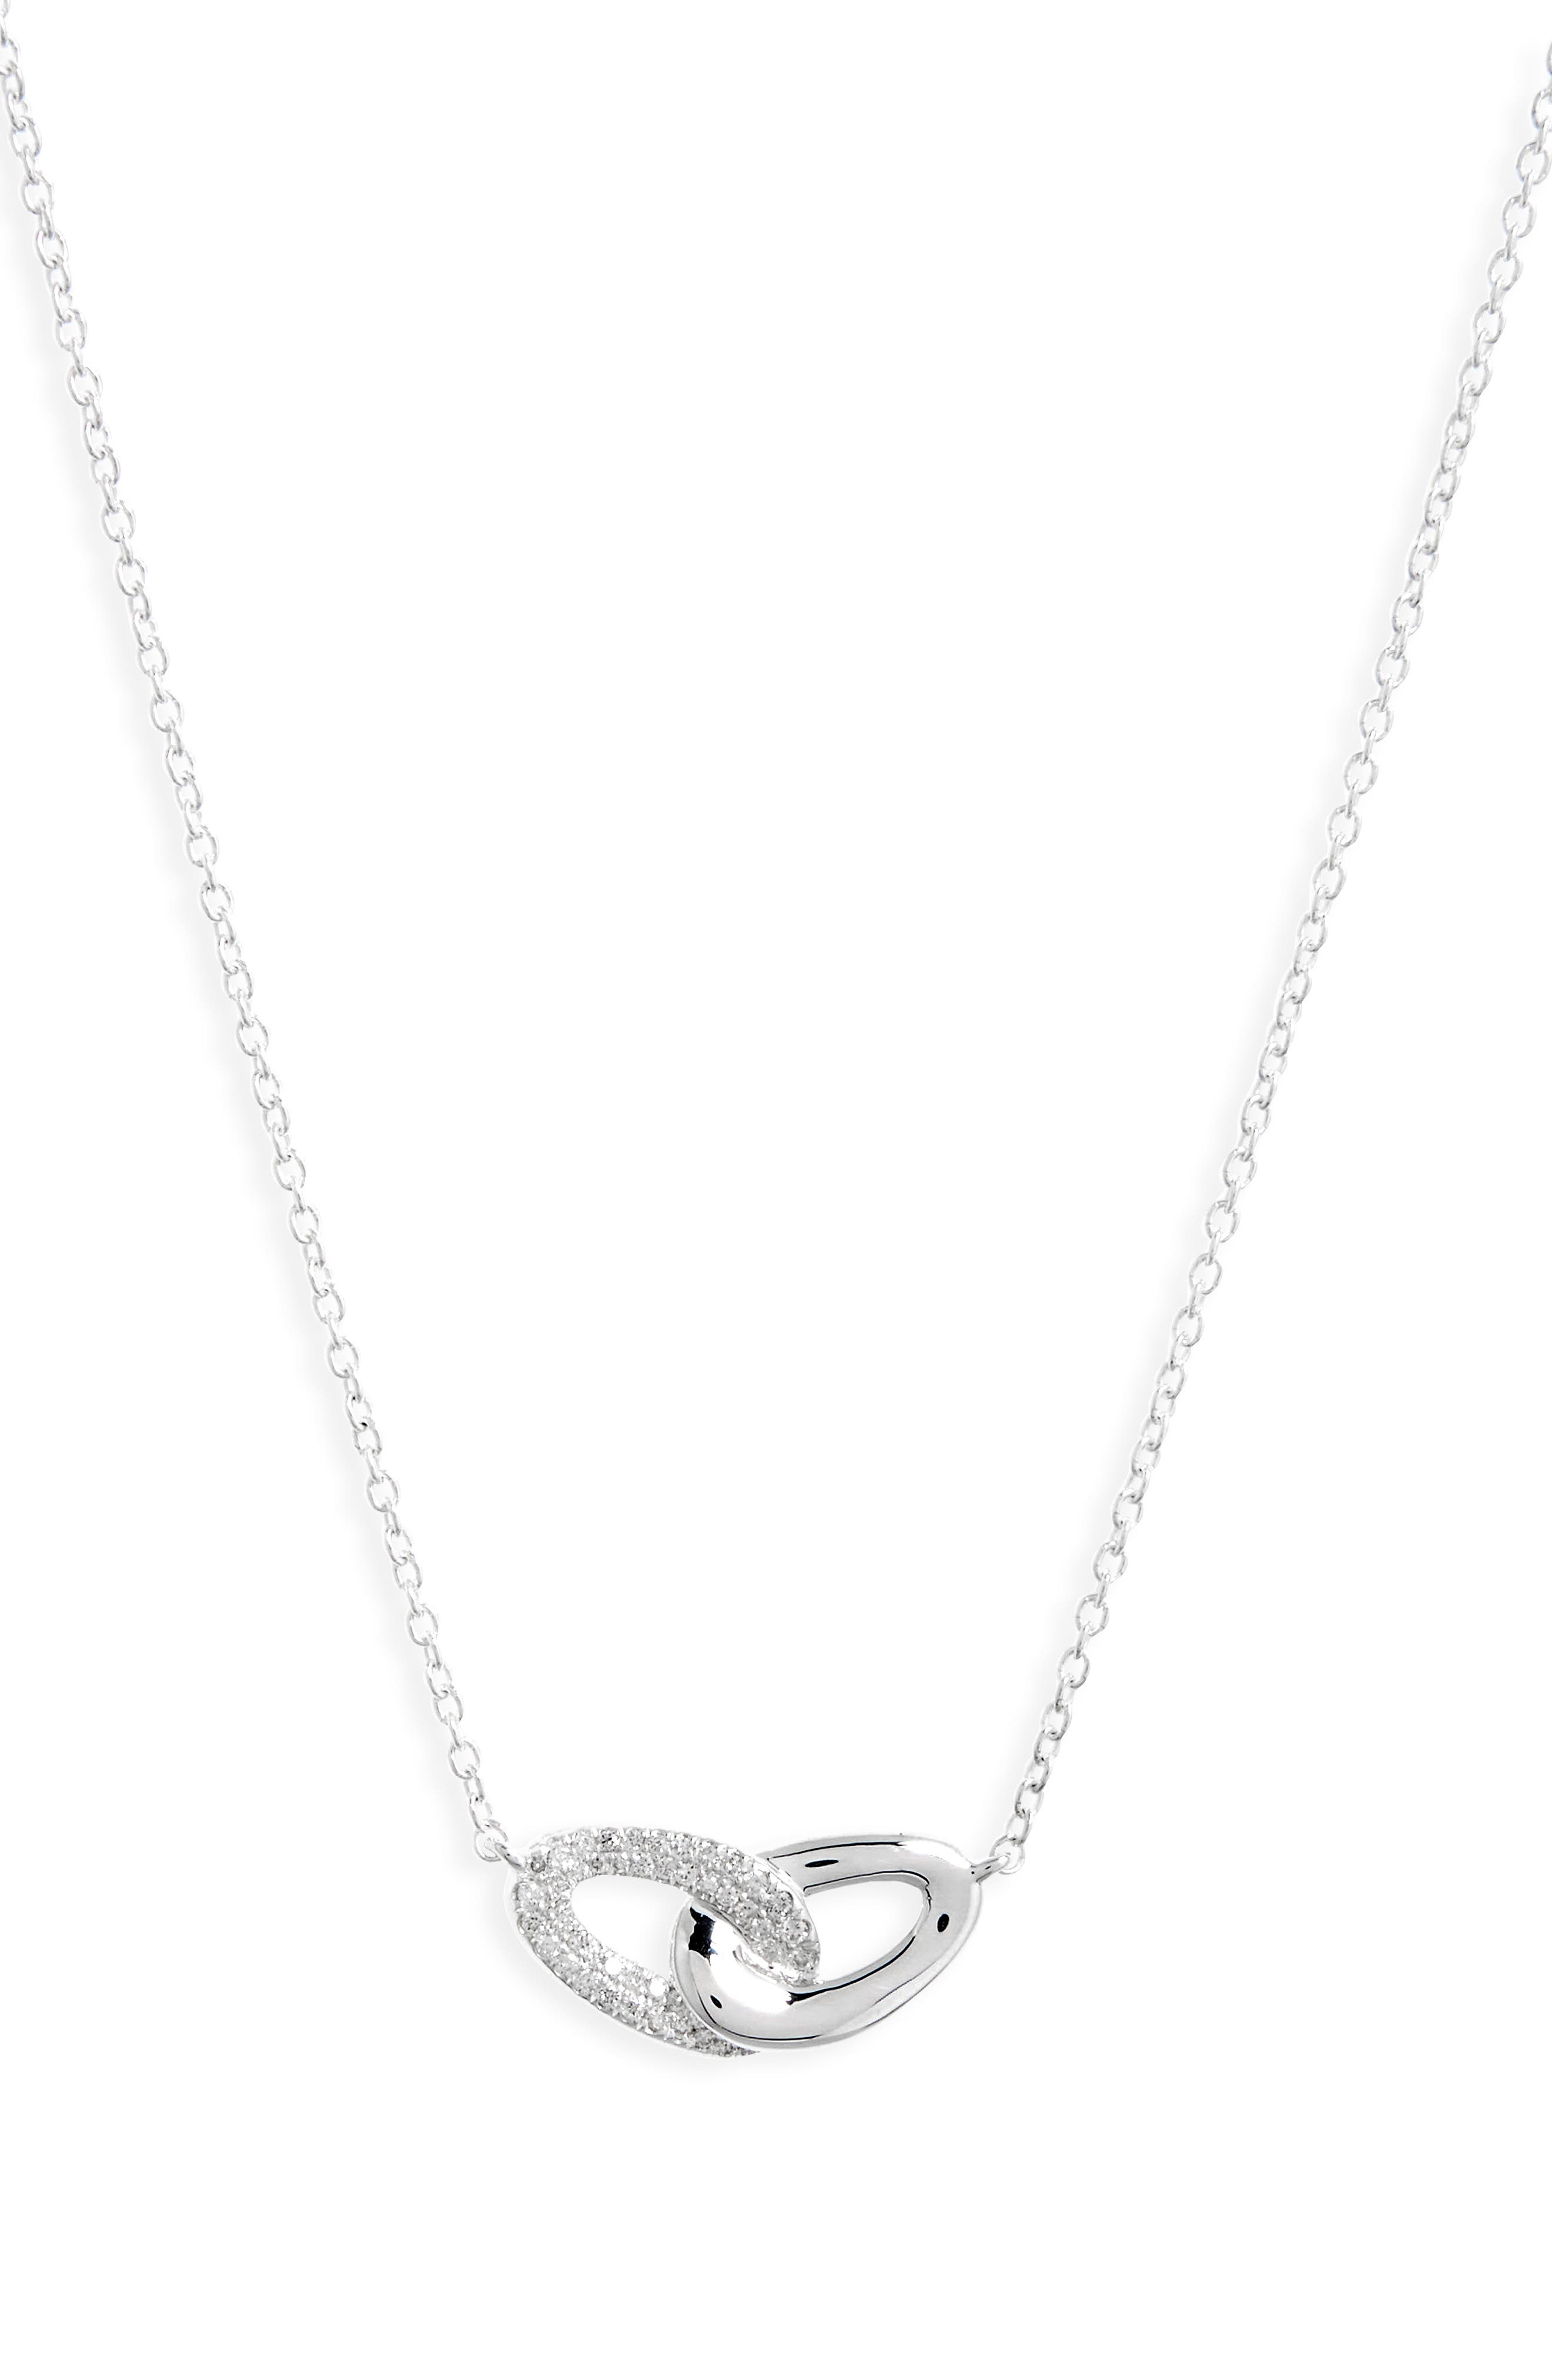 Cherish Interlocking Pendant Necklace,                             Main thumbnail 1, color,                             Silver